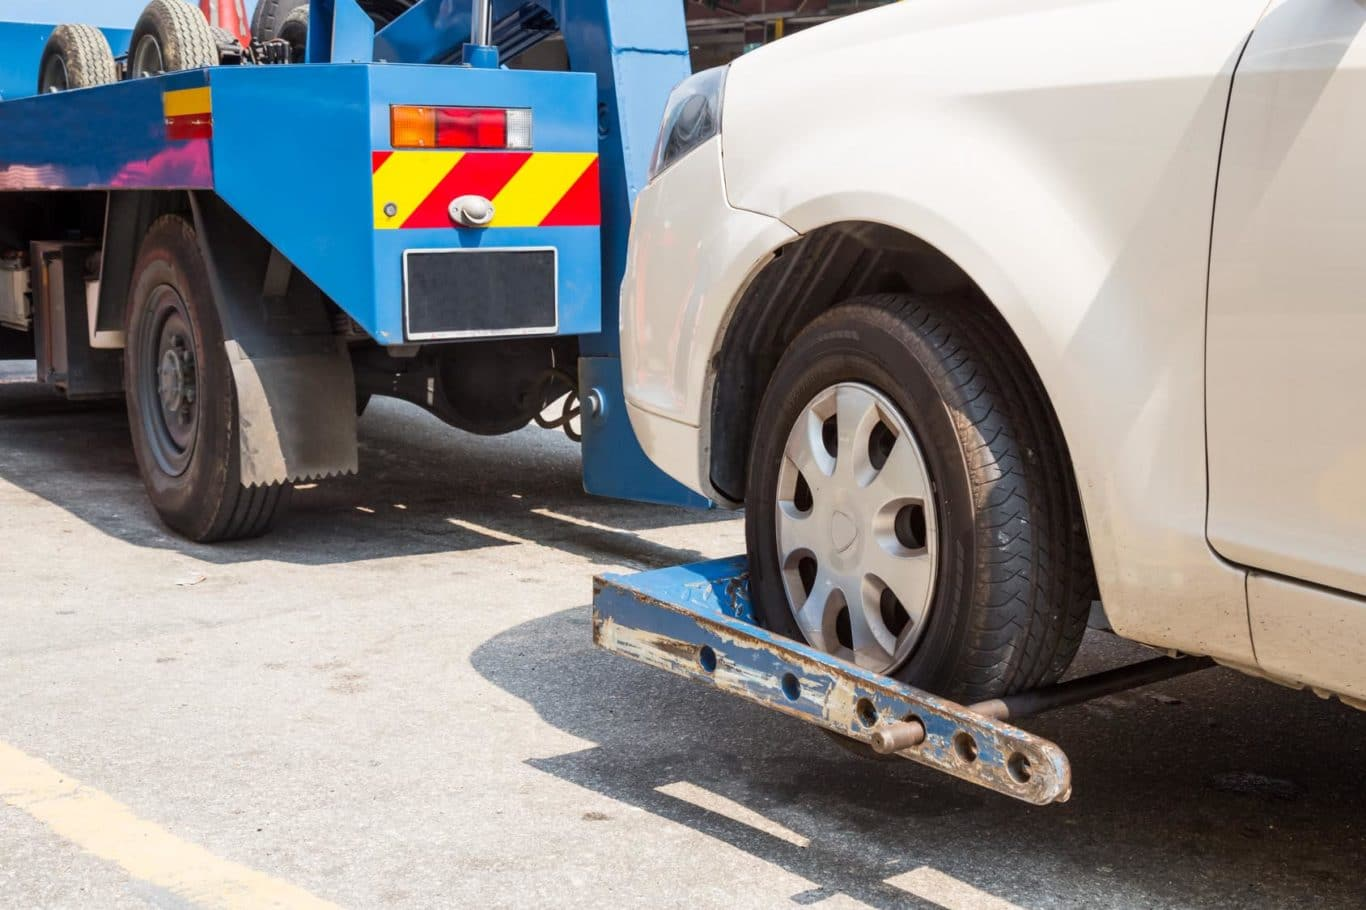 Milltown expert Towing services